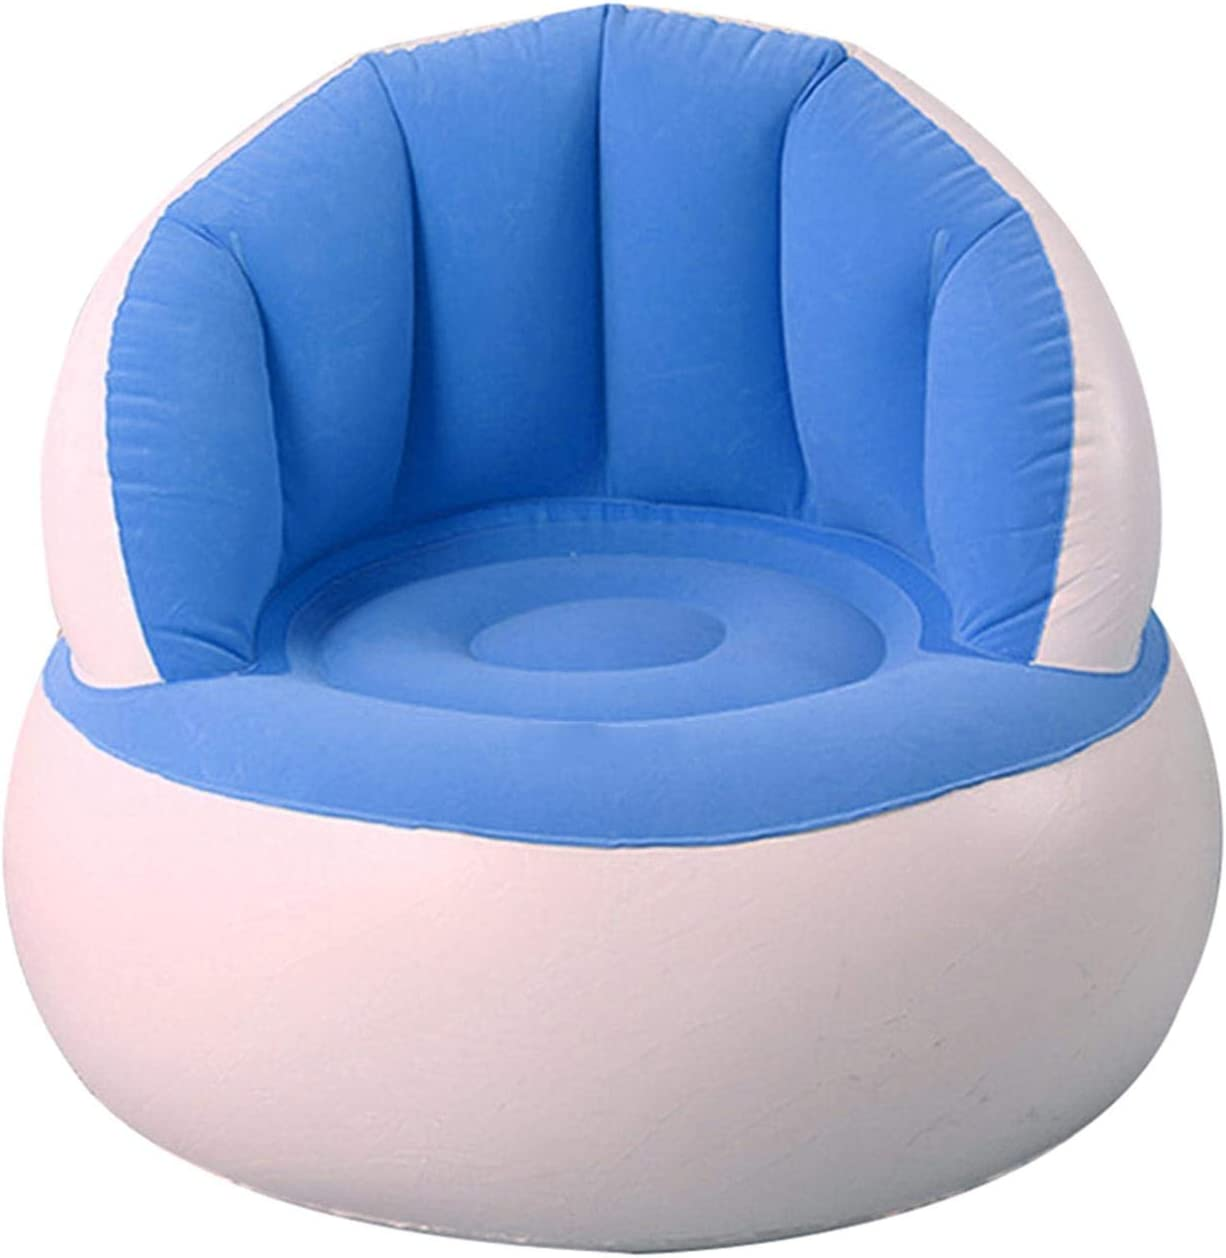 Purelemon Children Inflatable Chair - Inflatable Sofa Chair with Air Pump for Kids - Cute Flocking Colorful Folding Inflatable Stool Chair with Backrest for Kids